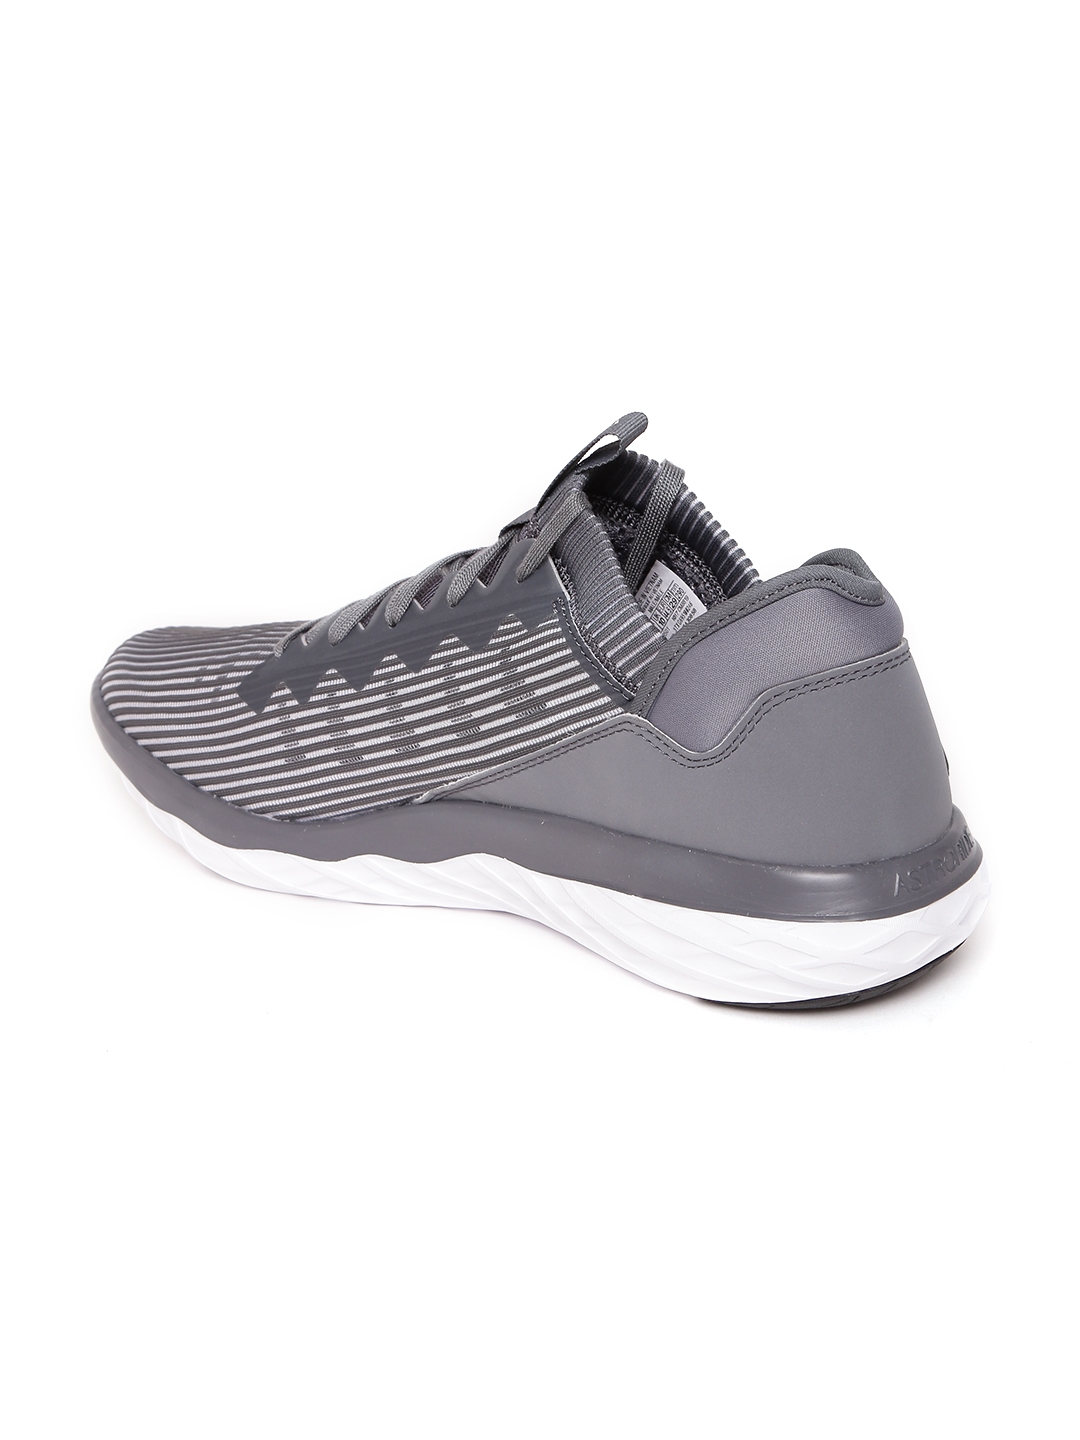 0fc9a184c Buy Reebok Men Grey Astroride Forever Running Shoes - Sports Shoes ...